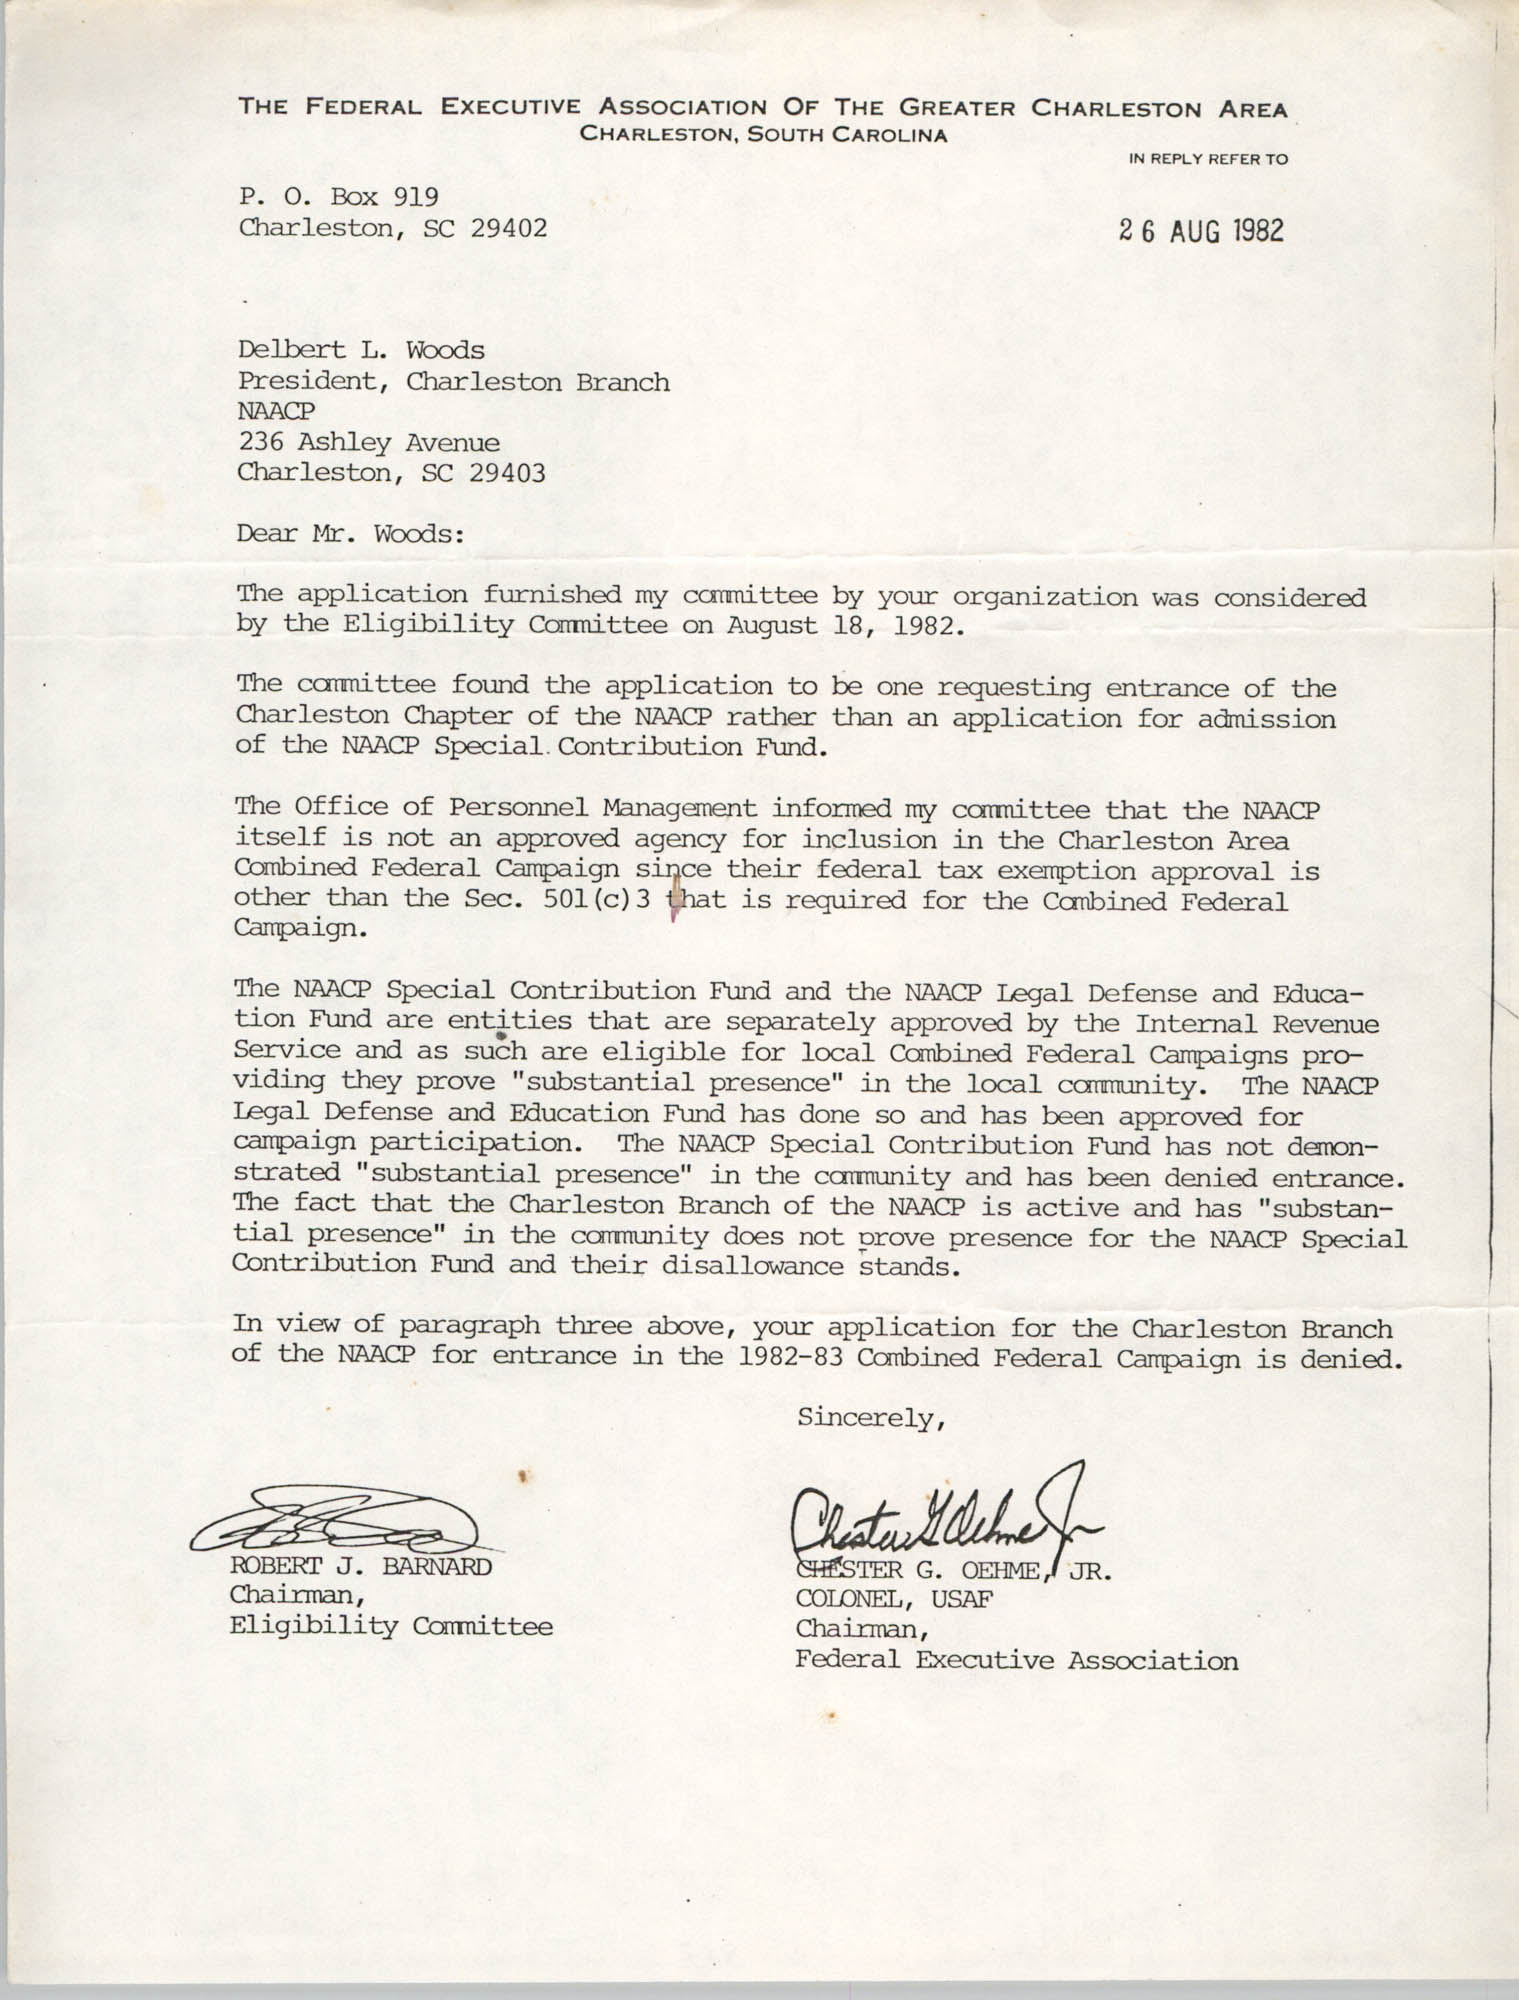 Letter from Robert J. Barnard and Chester G. Oehme, Jr. to Delbert L. Woods, August 26, 1982